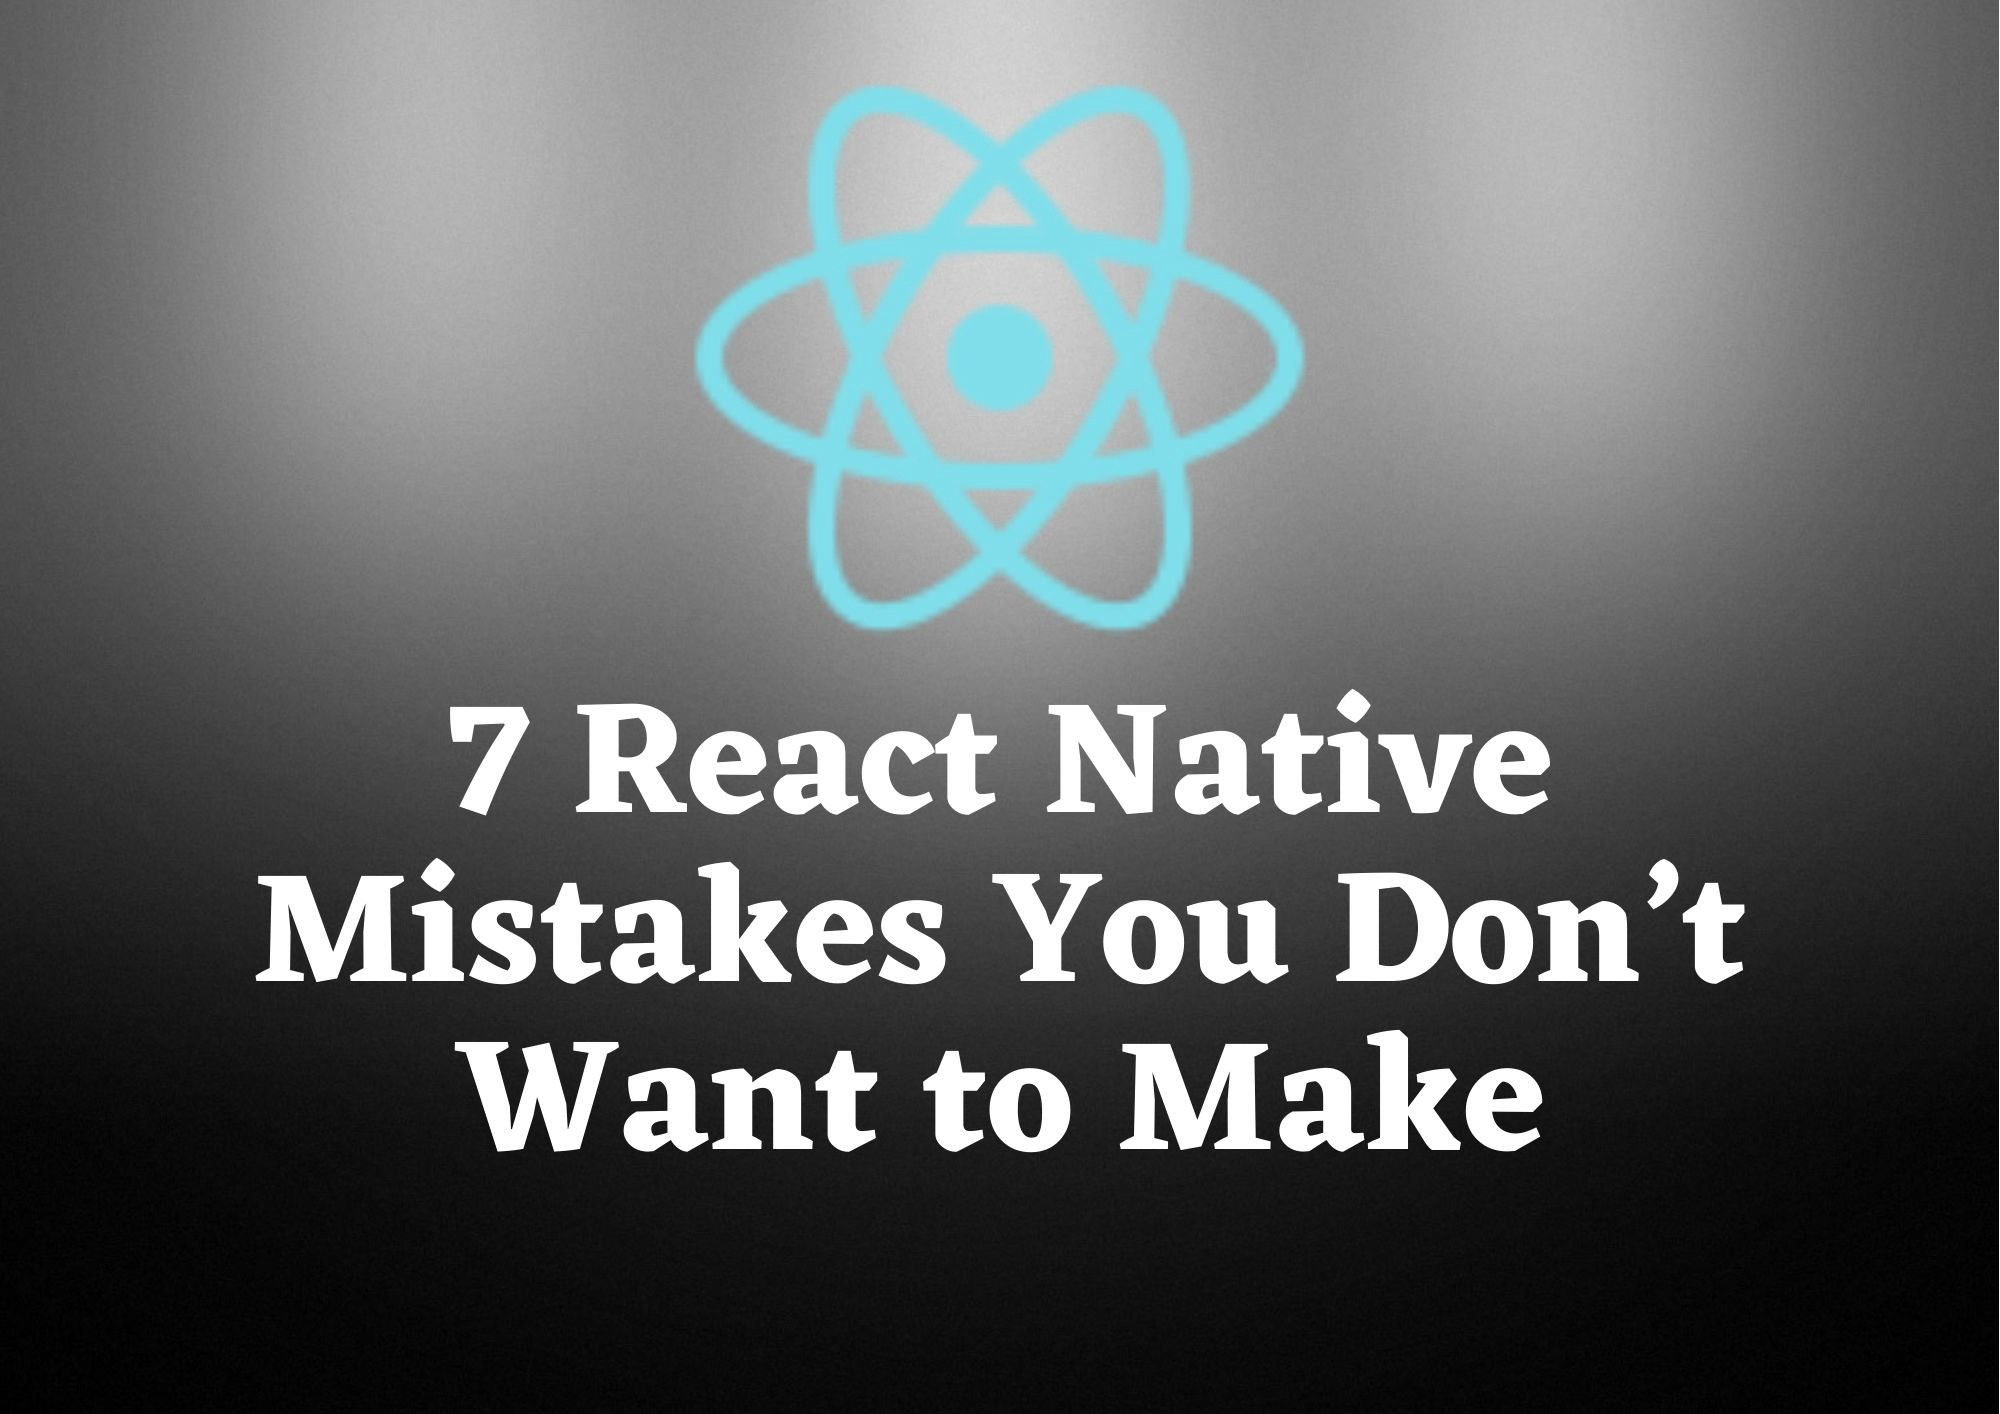 React Native Mistakes